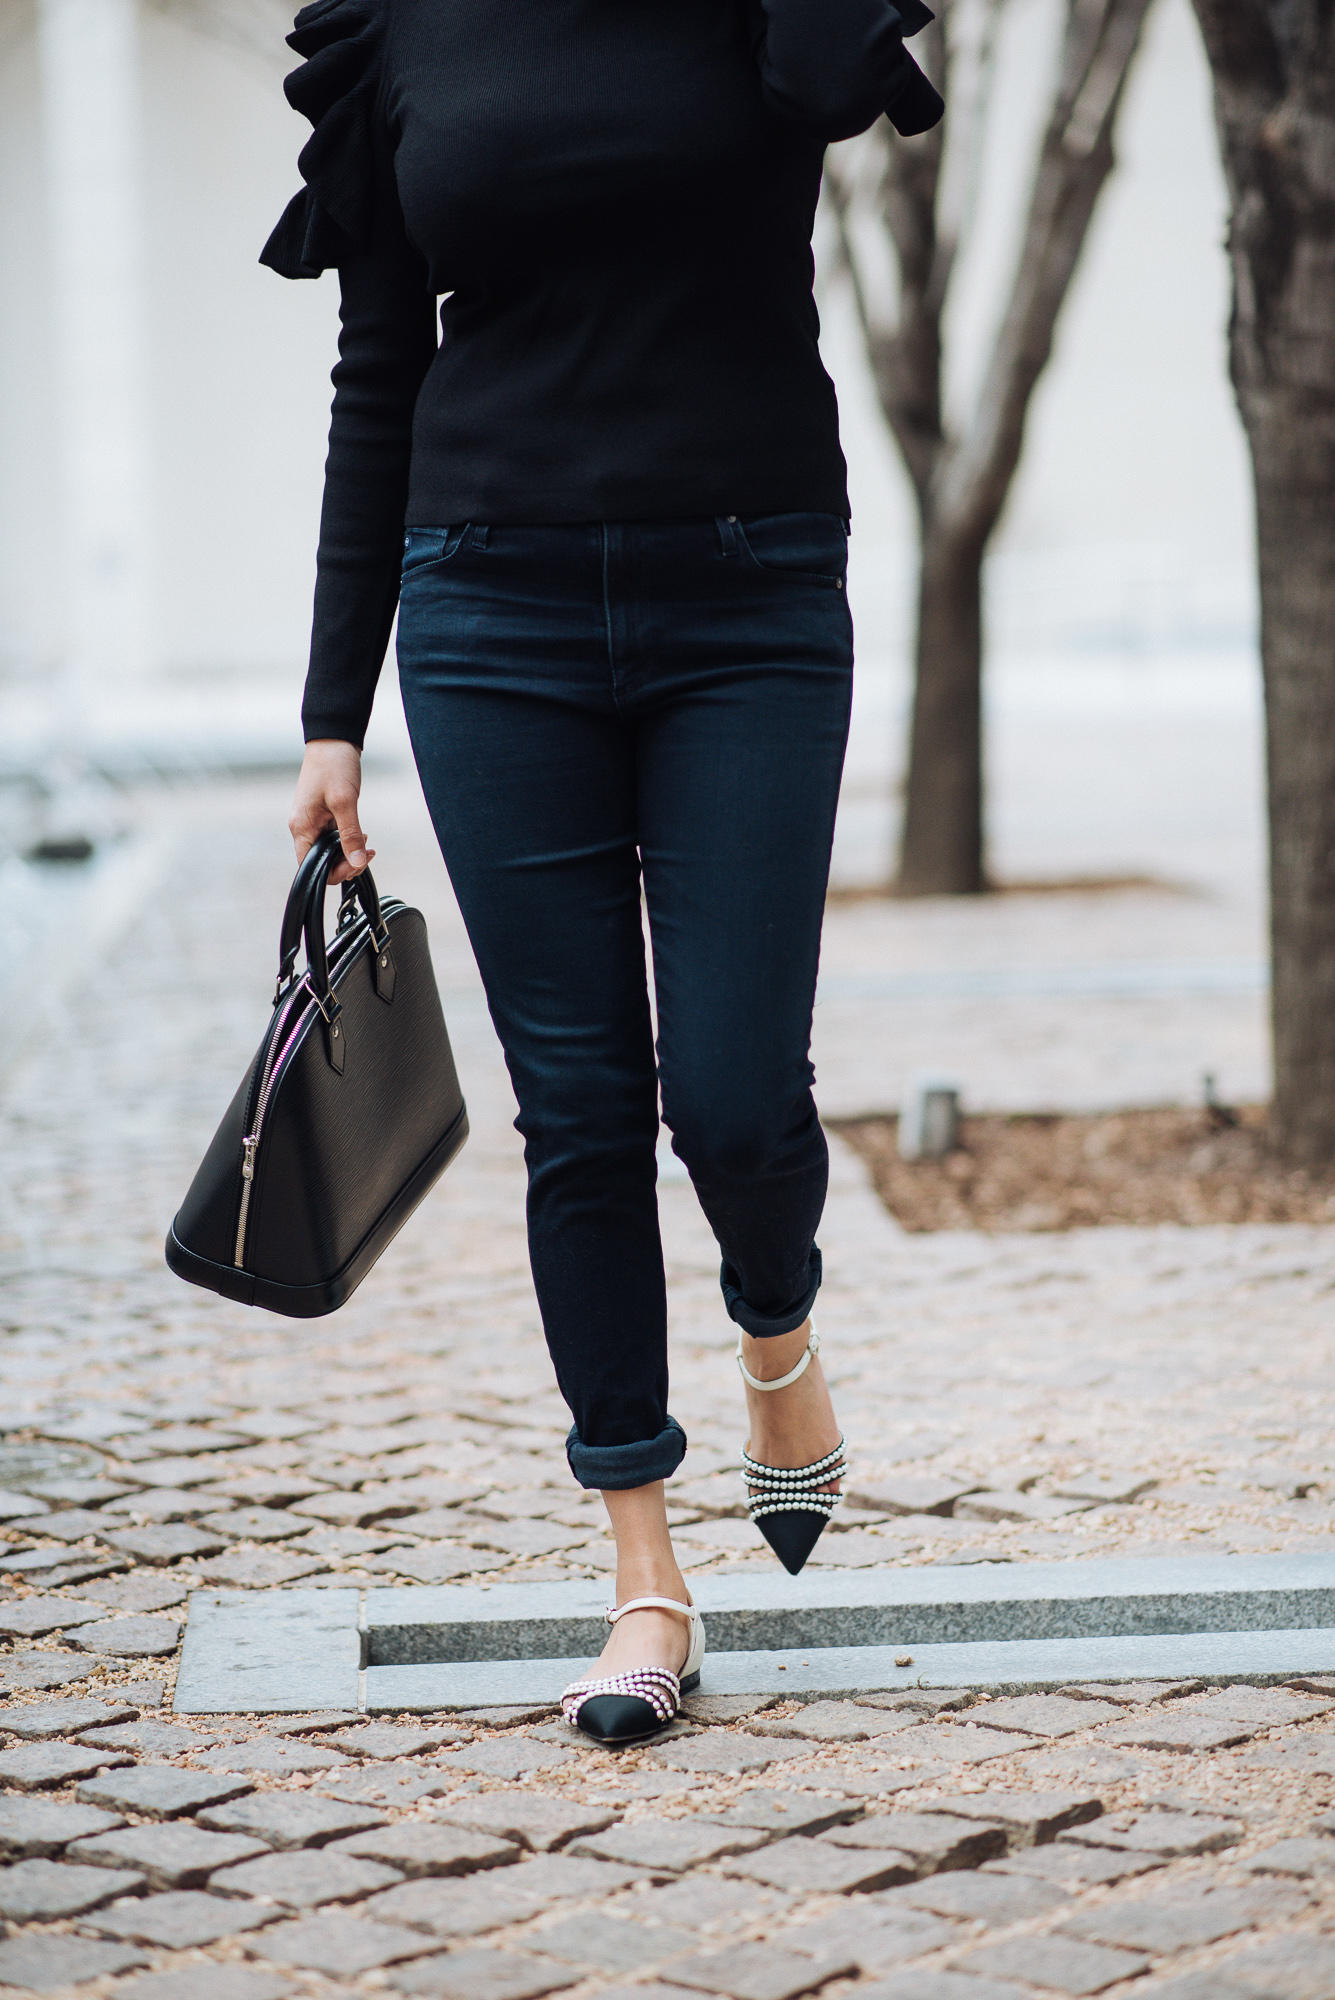 Image of all black everything | The cultured fashionista | Club Monaco Top | Louis Vuitton Alma | All Black Outfit Ideas